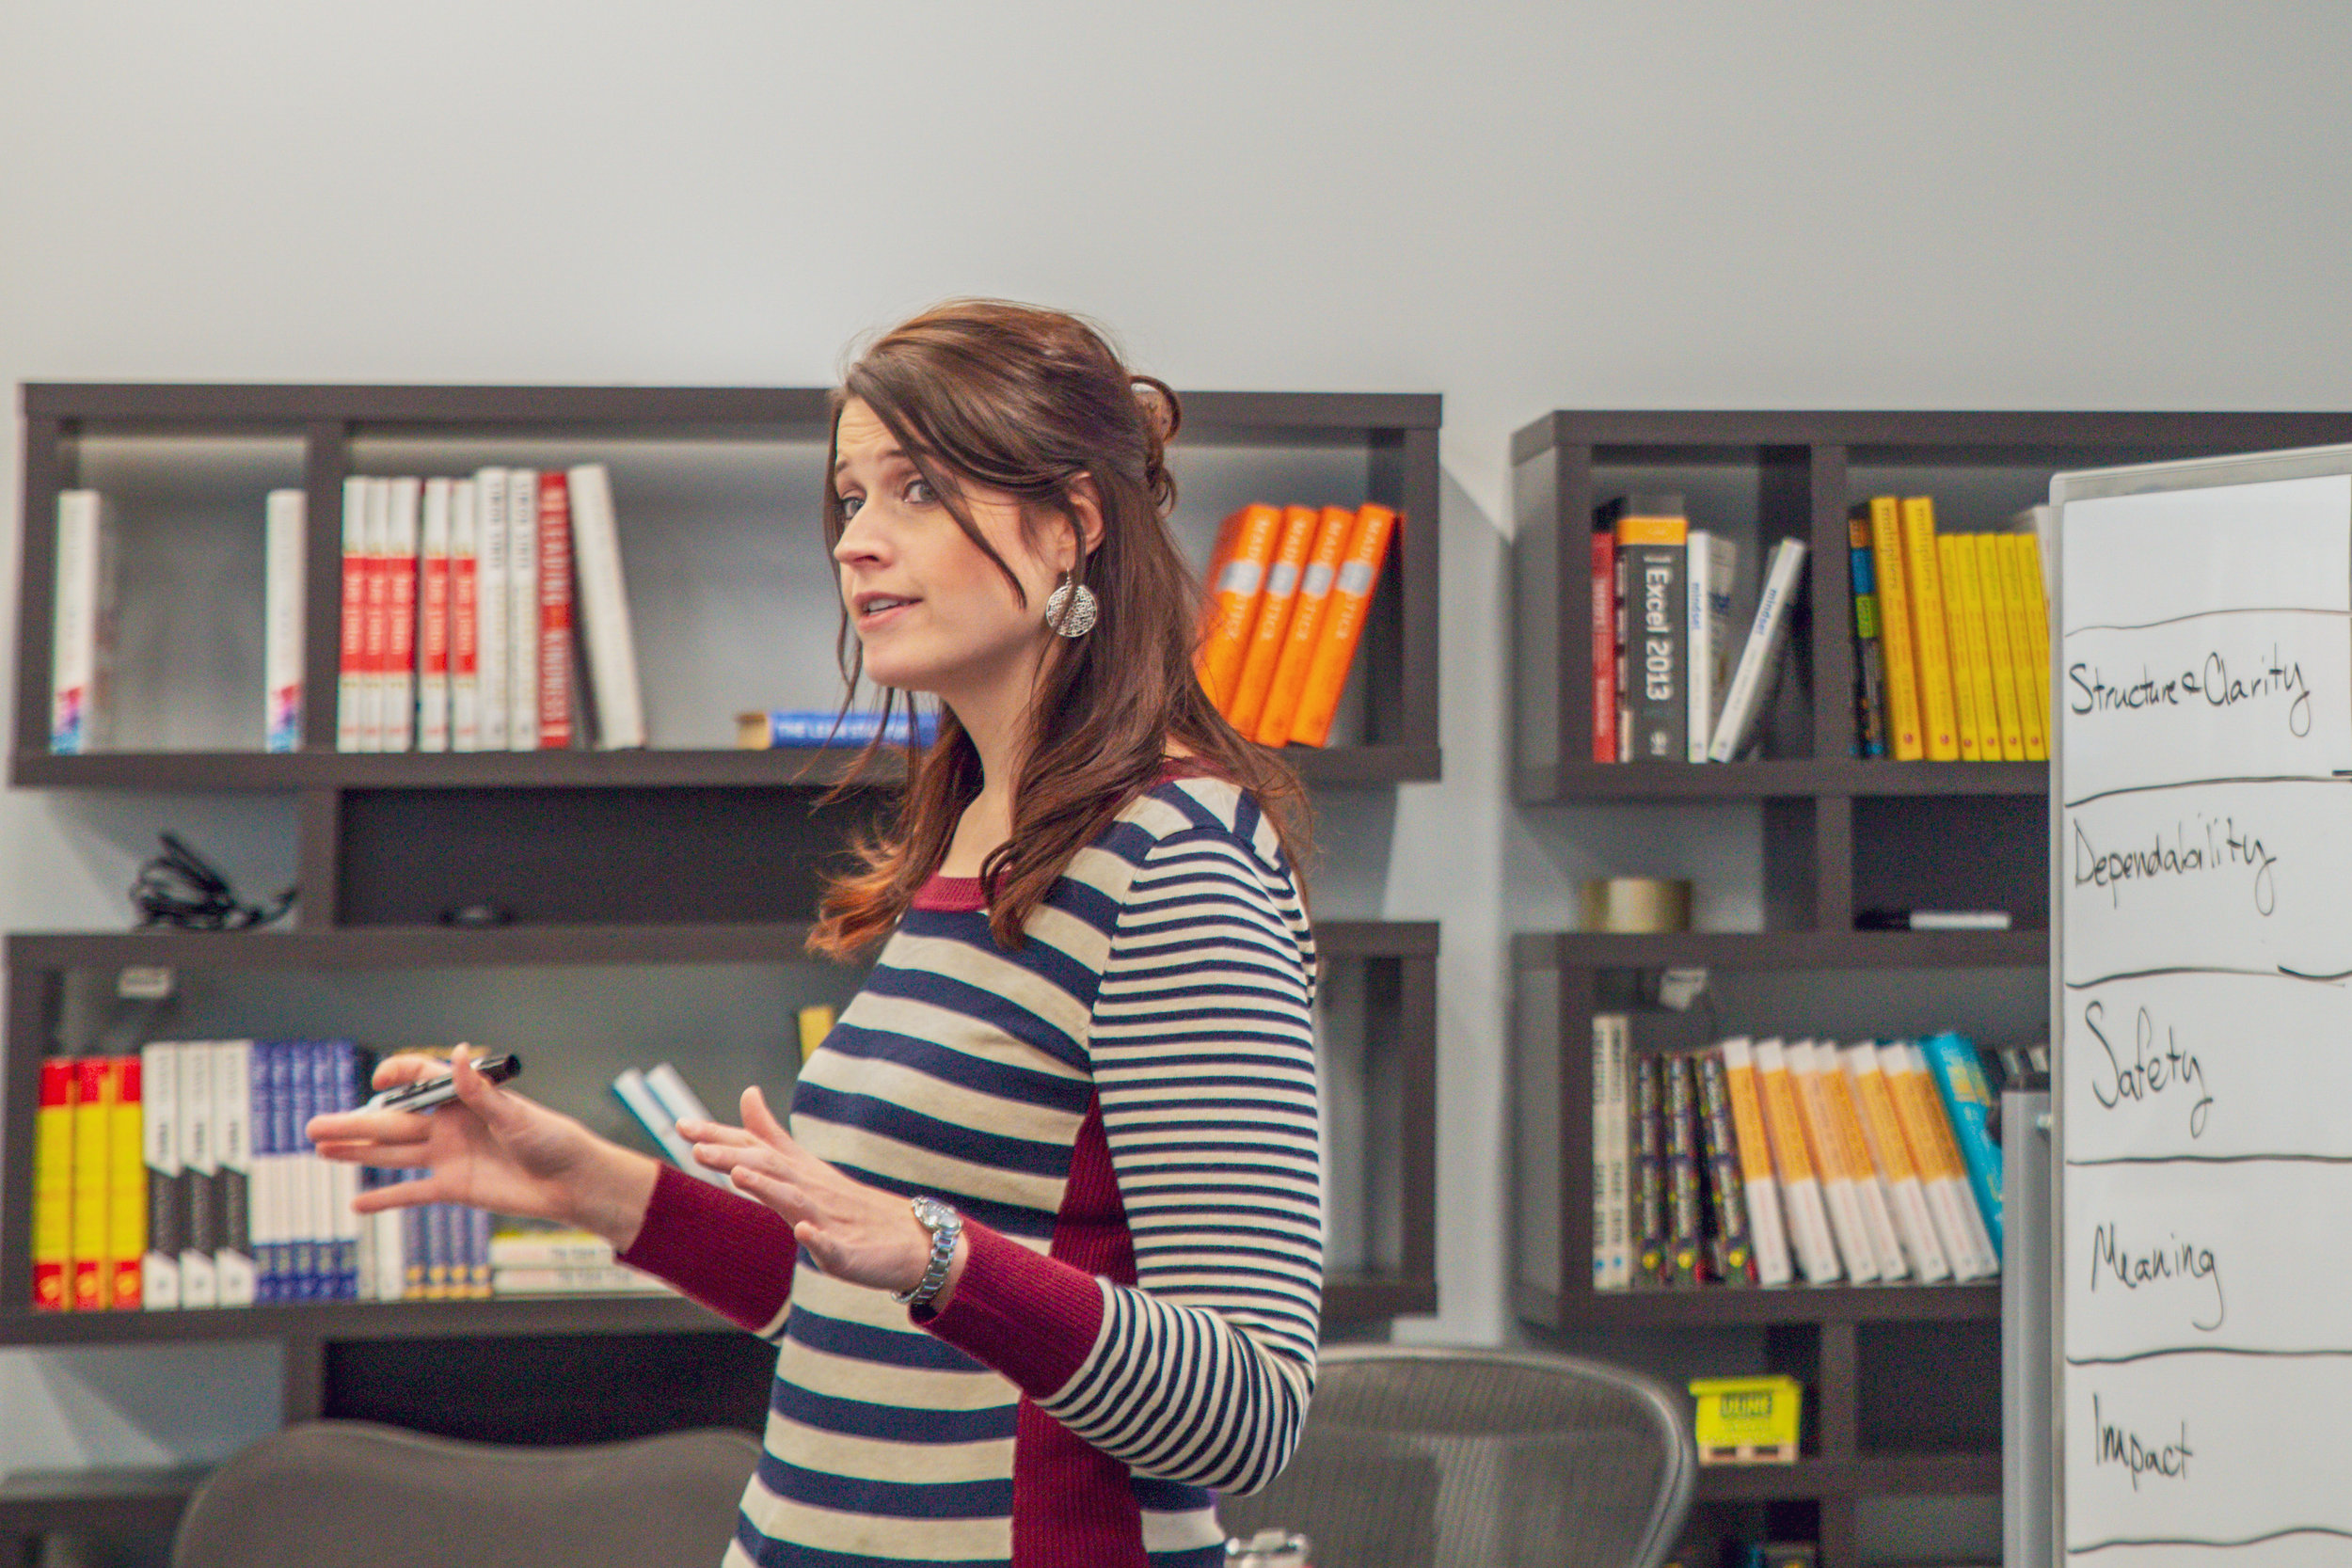 Trained facilitators like Steph Buck, Leadership Development Program Lead, walk each team through the Team Health Check feedback session, and guides the team in selecting action items.